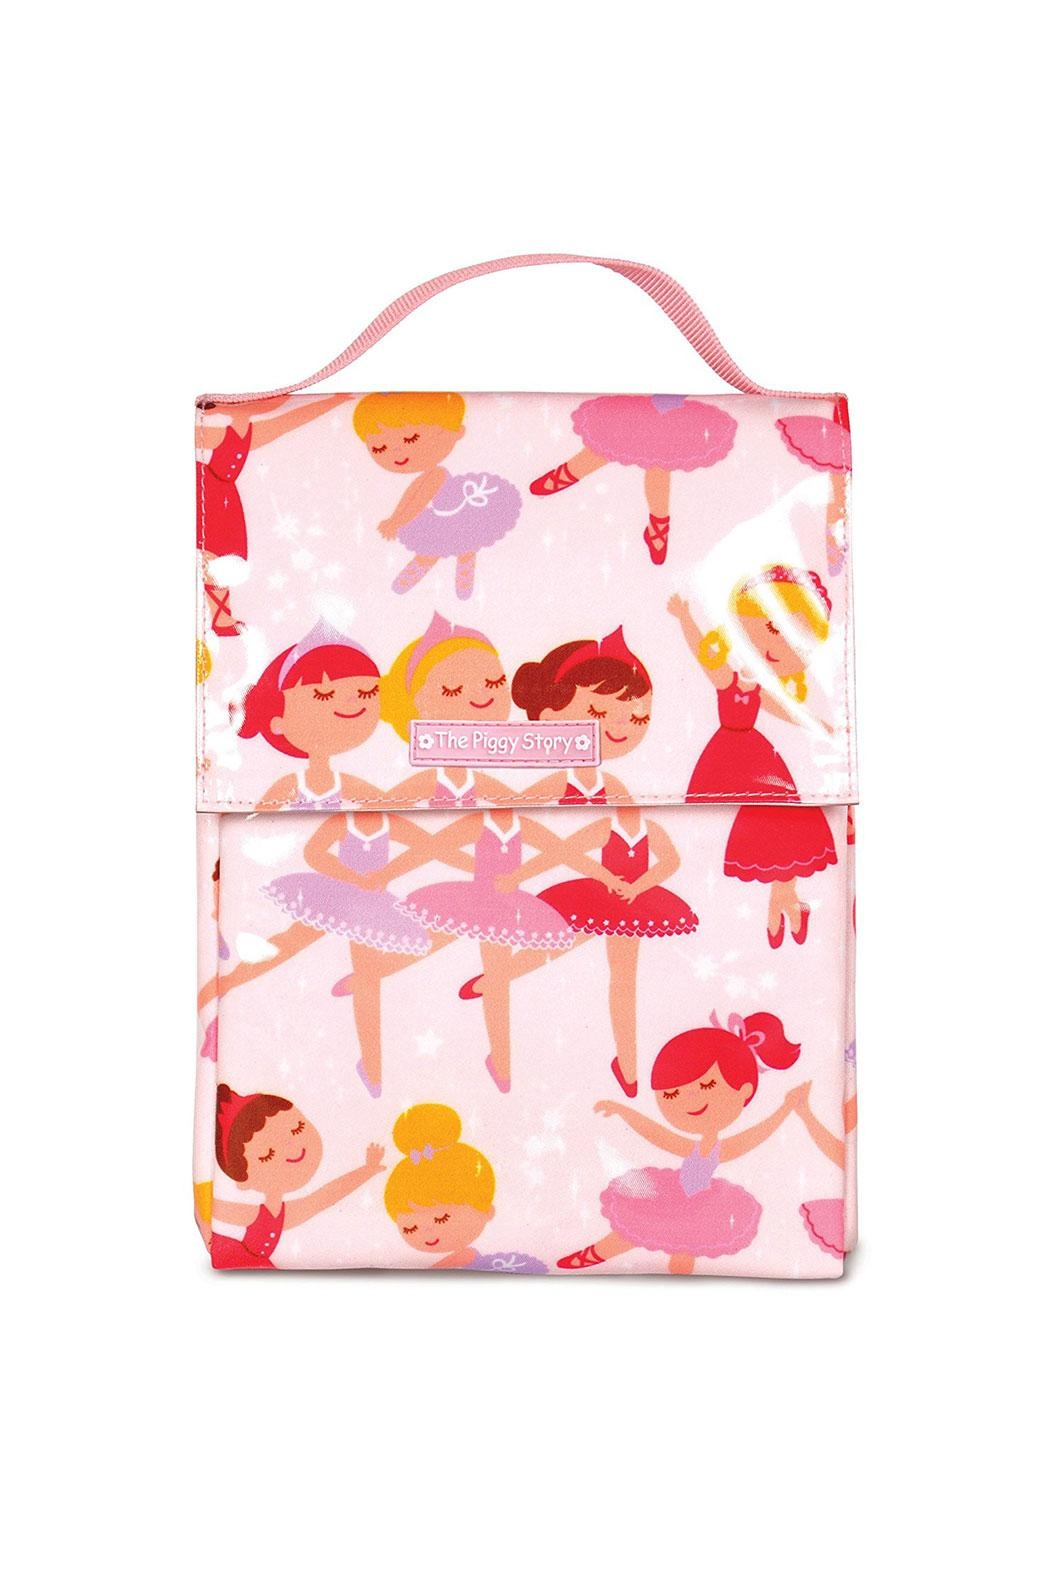 The Piggy Story Ballerinas Lunch Sack - Main Image